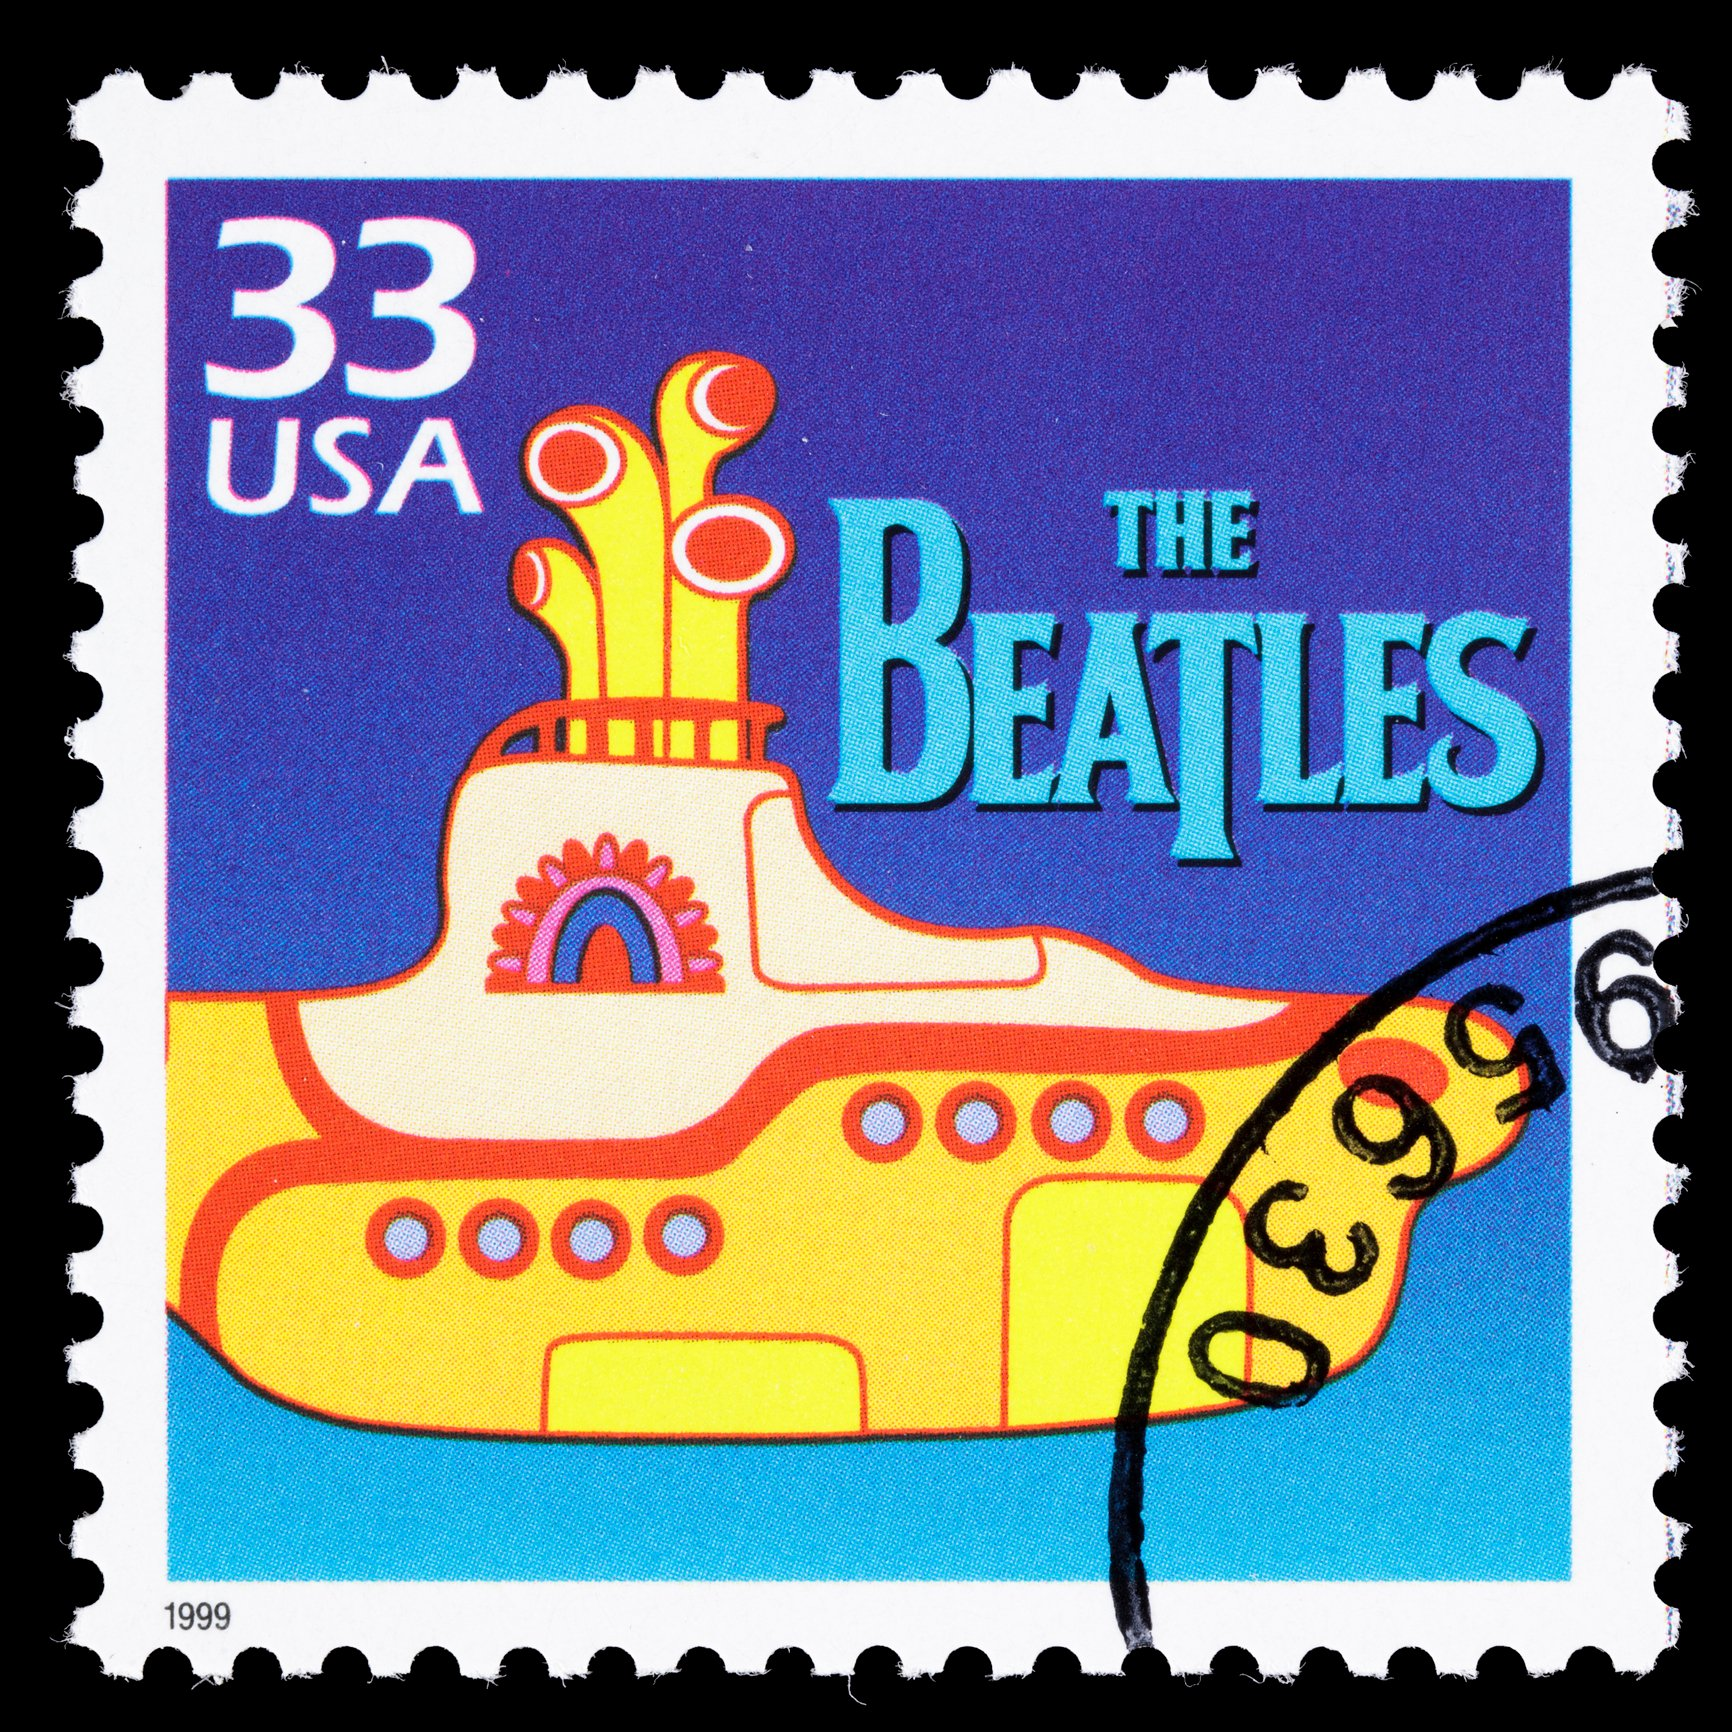 A 1999 U.S. postage stamp with an illustration of the